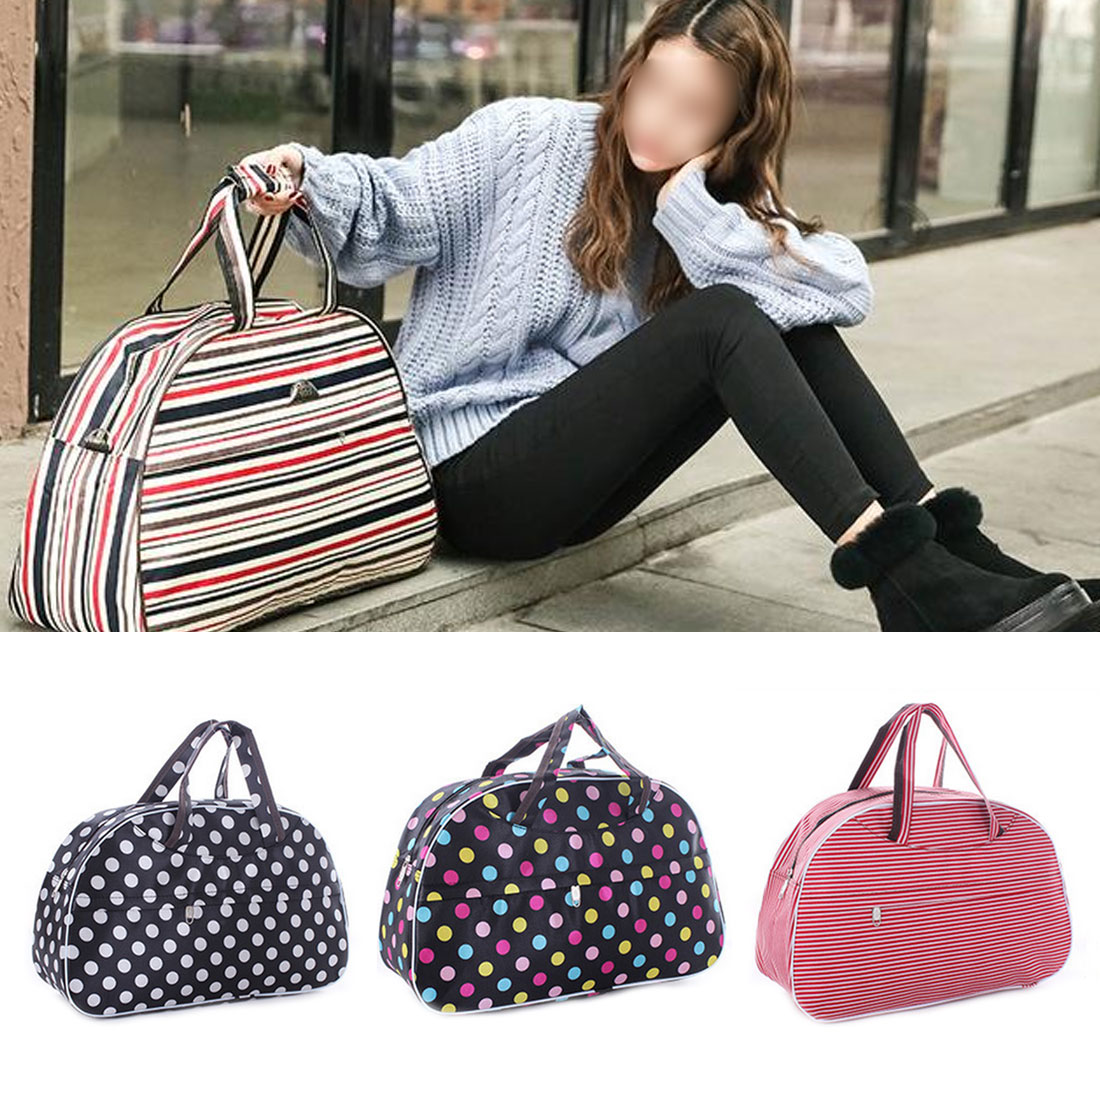 Women Travel Bags Handbags New Hot Fashion Portable Luggage Bag Floral Print Duffel Bags Waterproof Weekend Duffle Bag